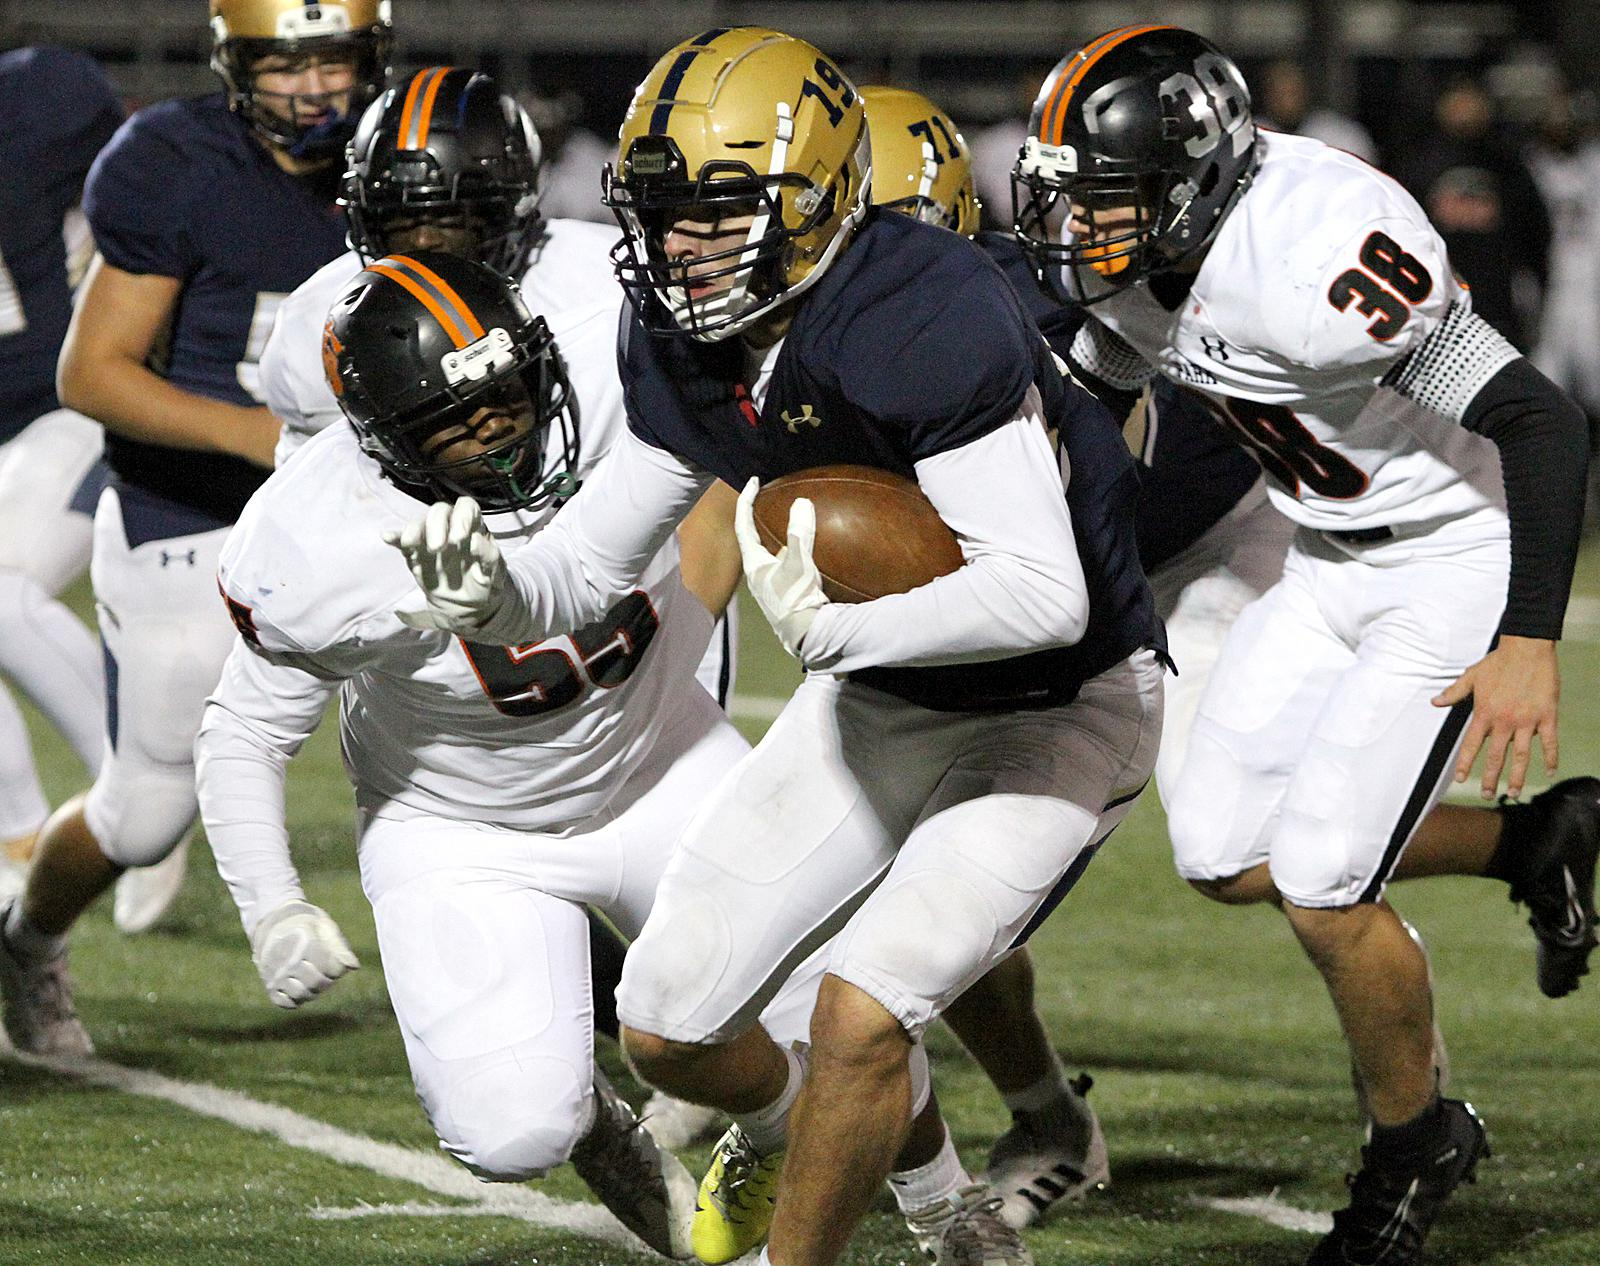 Chanhassen junior Jason Collins finished with 132 yards on 31 carries to help lead the Storm to a 40-24 win over St. Louis Park on Friday. Photo by Drew Herron, SportsEngine